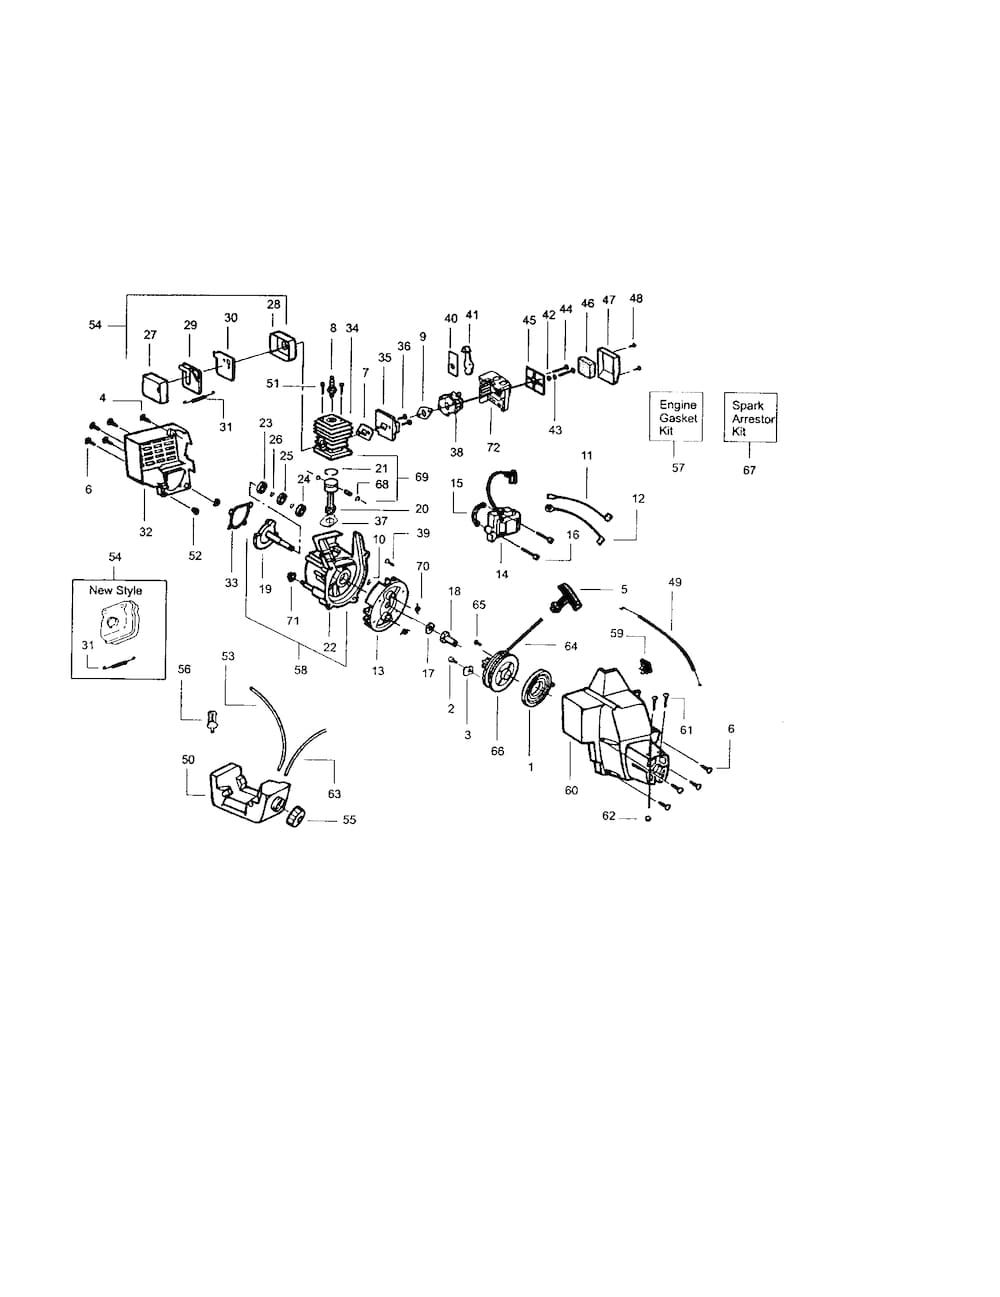 mallory unilite wiring diagram msd with Mallory Distributor Wiring Diagram on For 6btm Wiring Diagram also Mallory Distributor Wiring Diagram besides Datsun Ignition Wiring Diagram as well Mallory 6al Wiring Diagram in addition Vertex Mag o Wiring Diagram Plug.